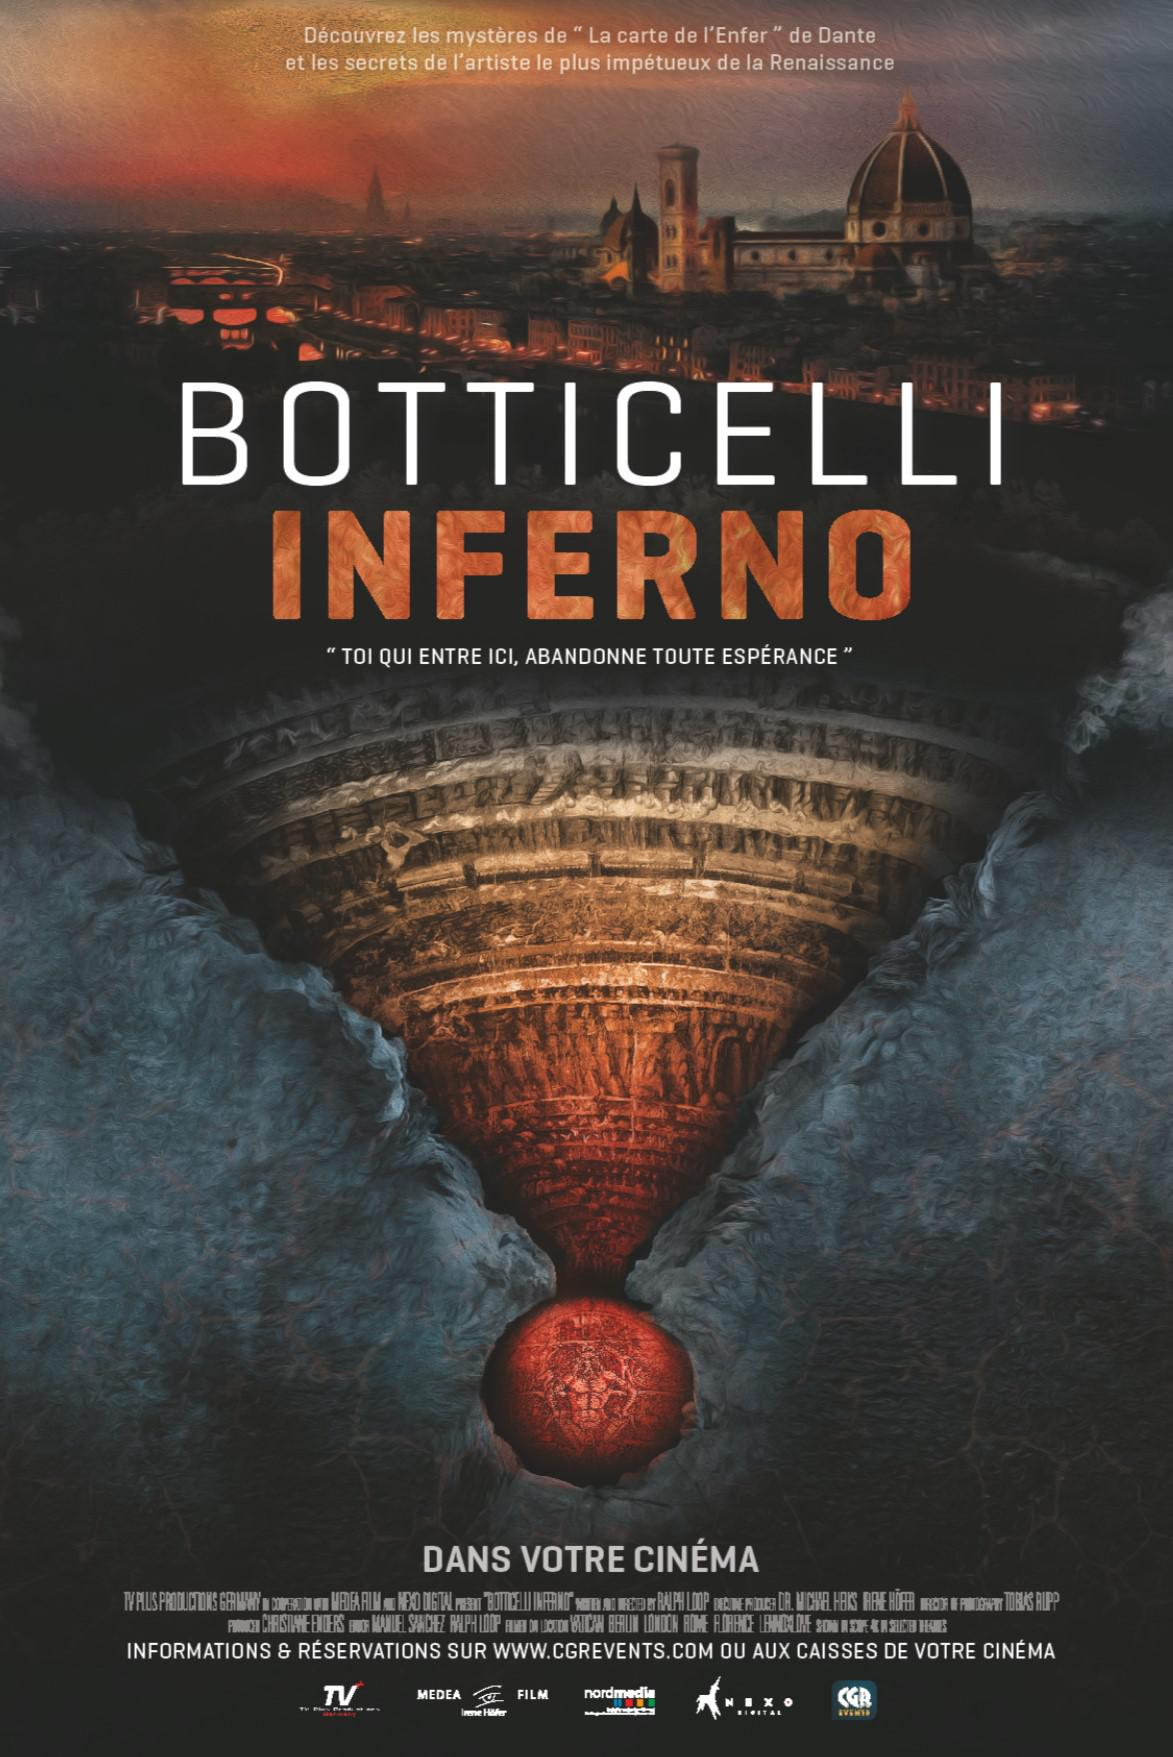 Botticelli Inferno (Vostfr)